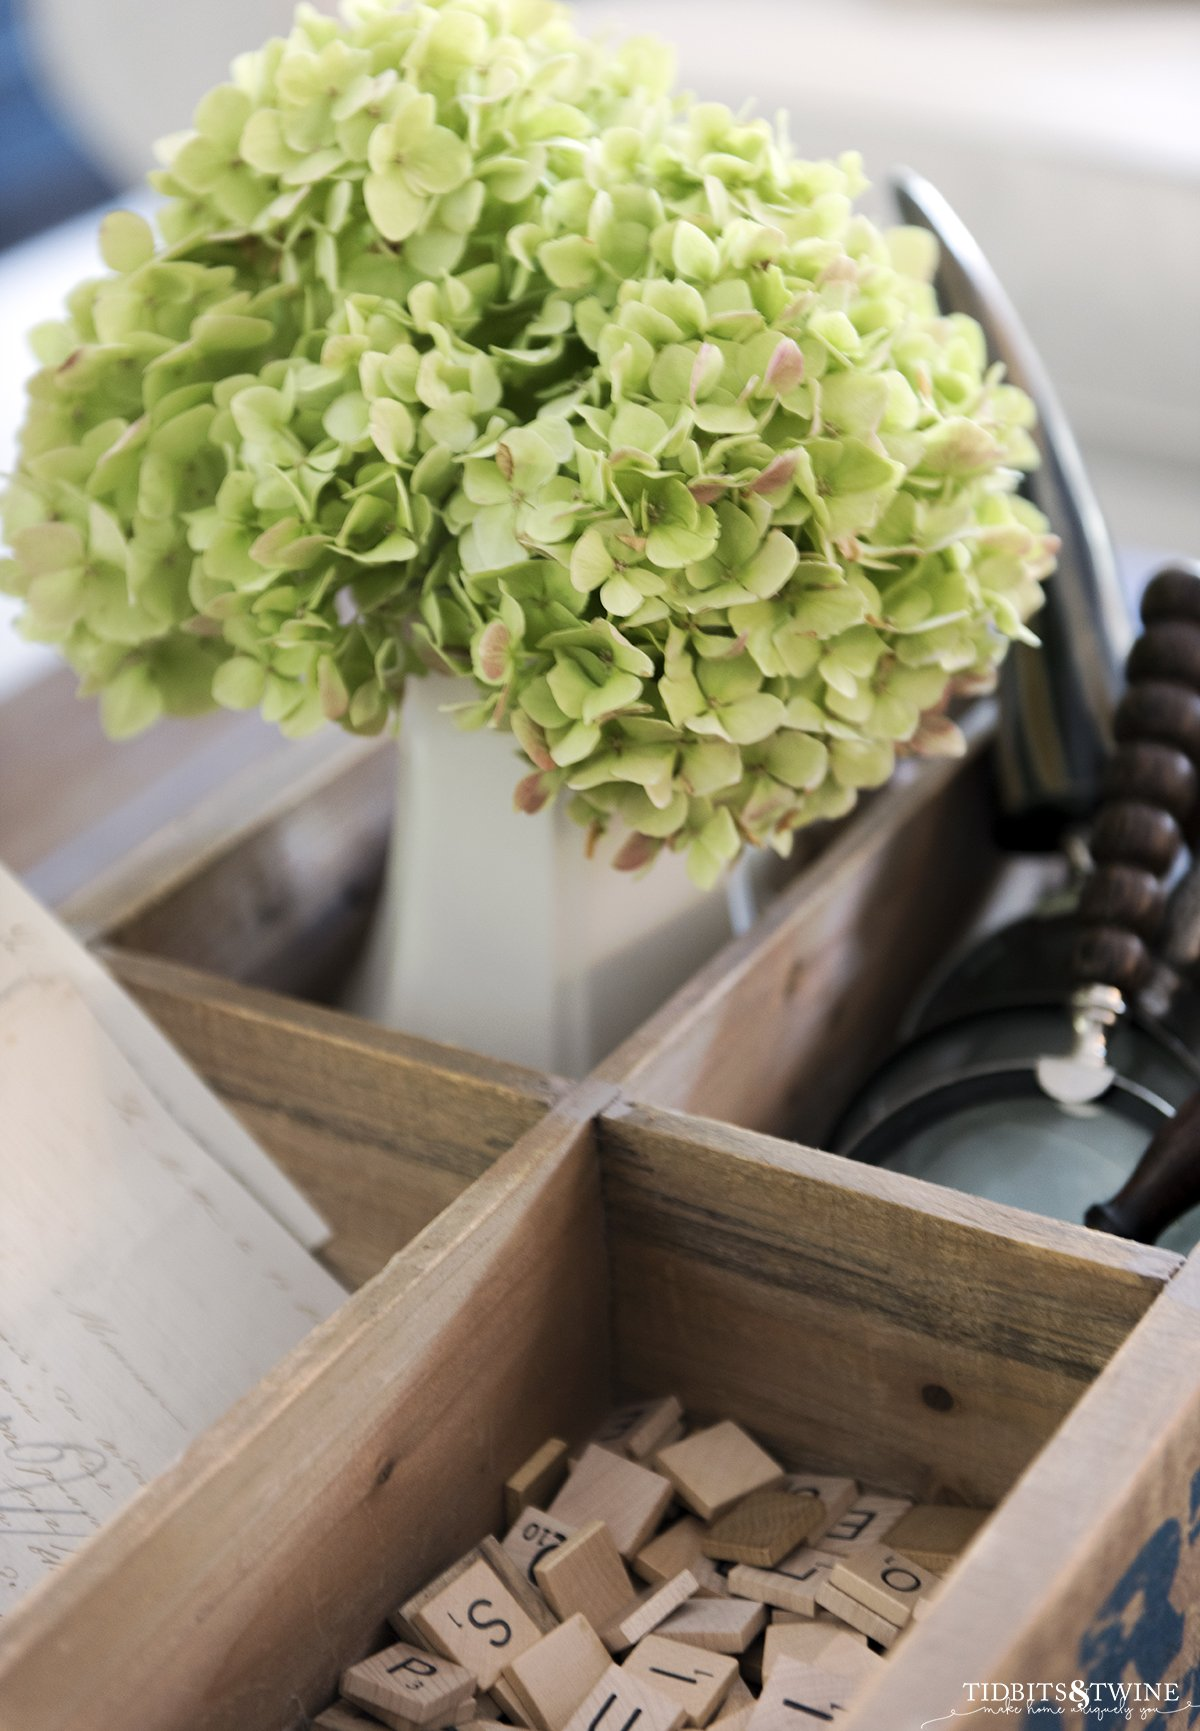 bigleaf hydrangea that has turned green in a vase with magnifying glasses and scrabble tiles as a vignette on coffee table